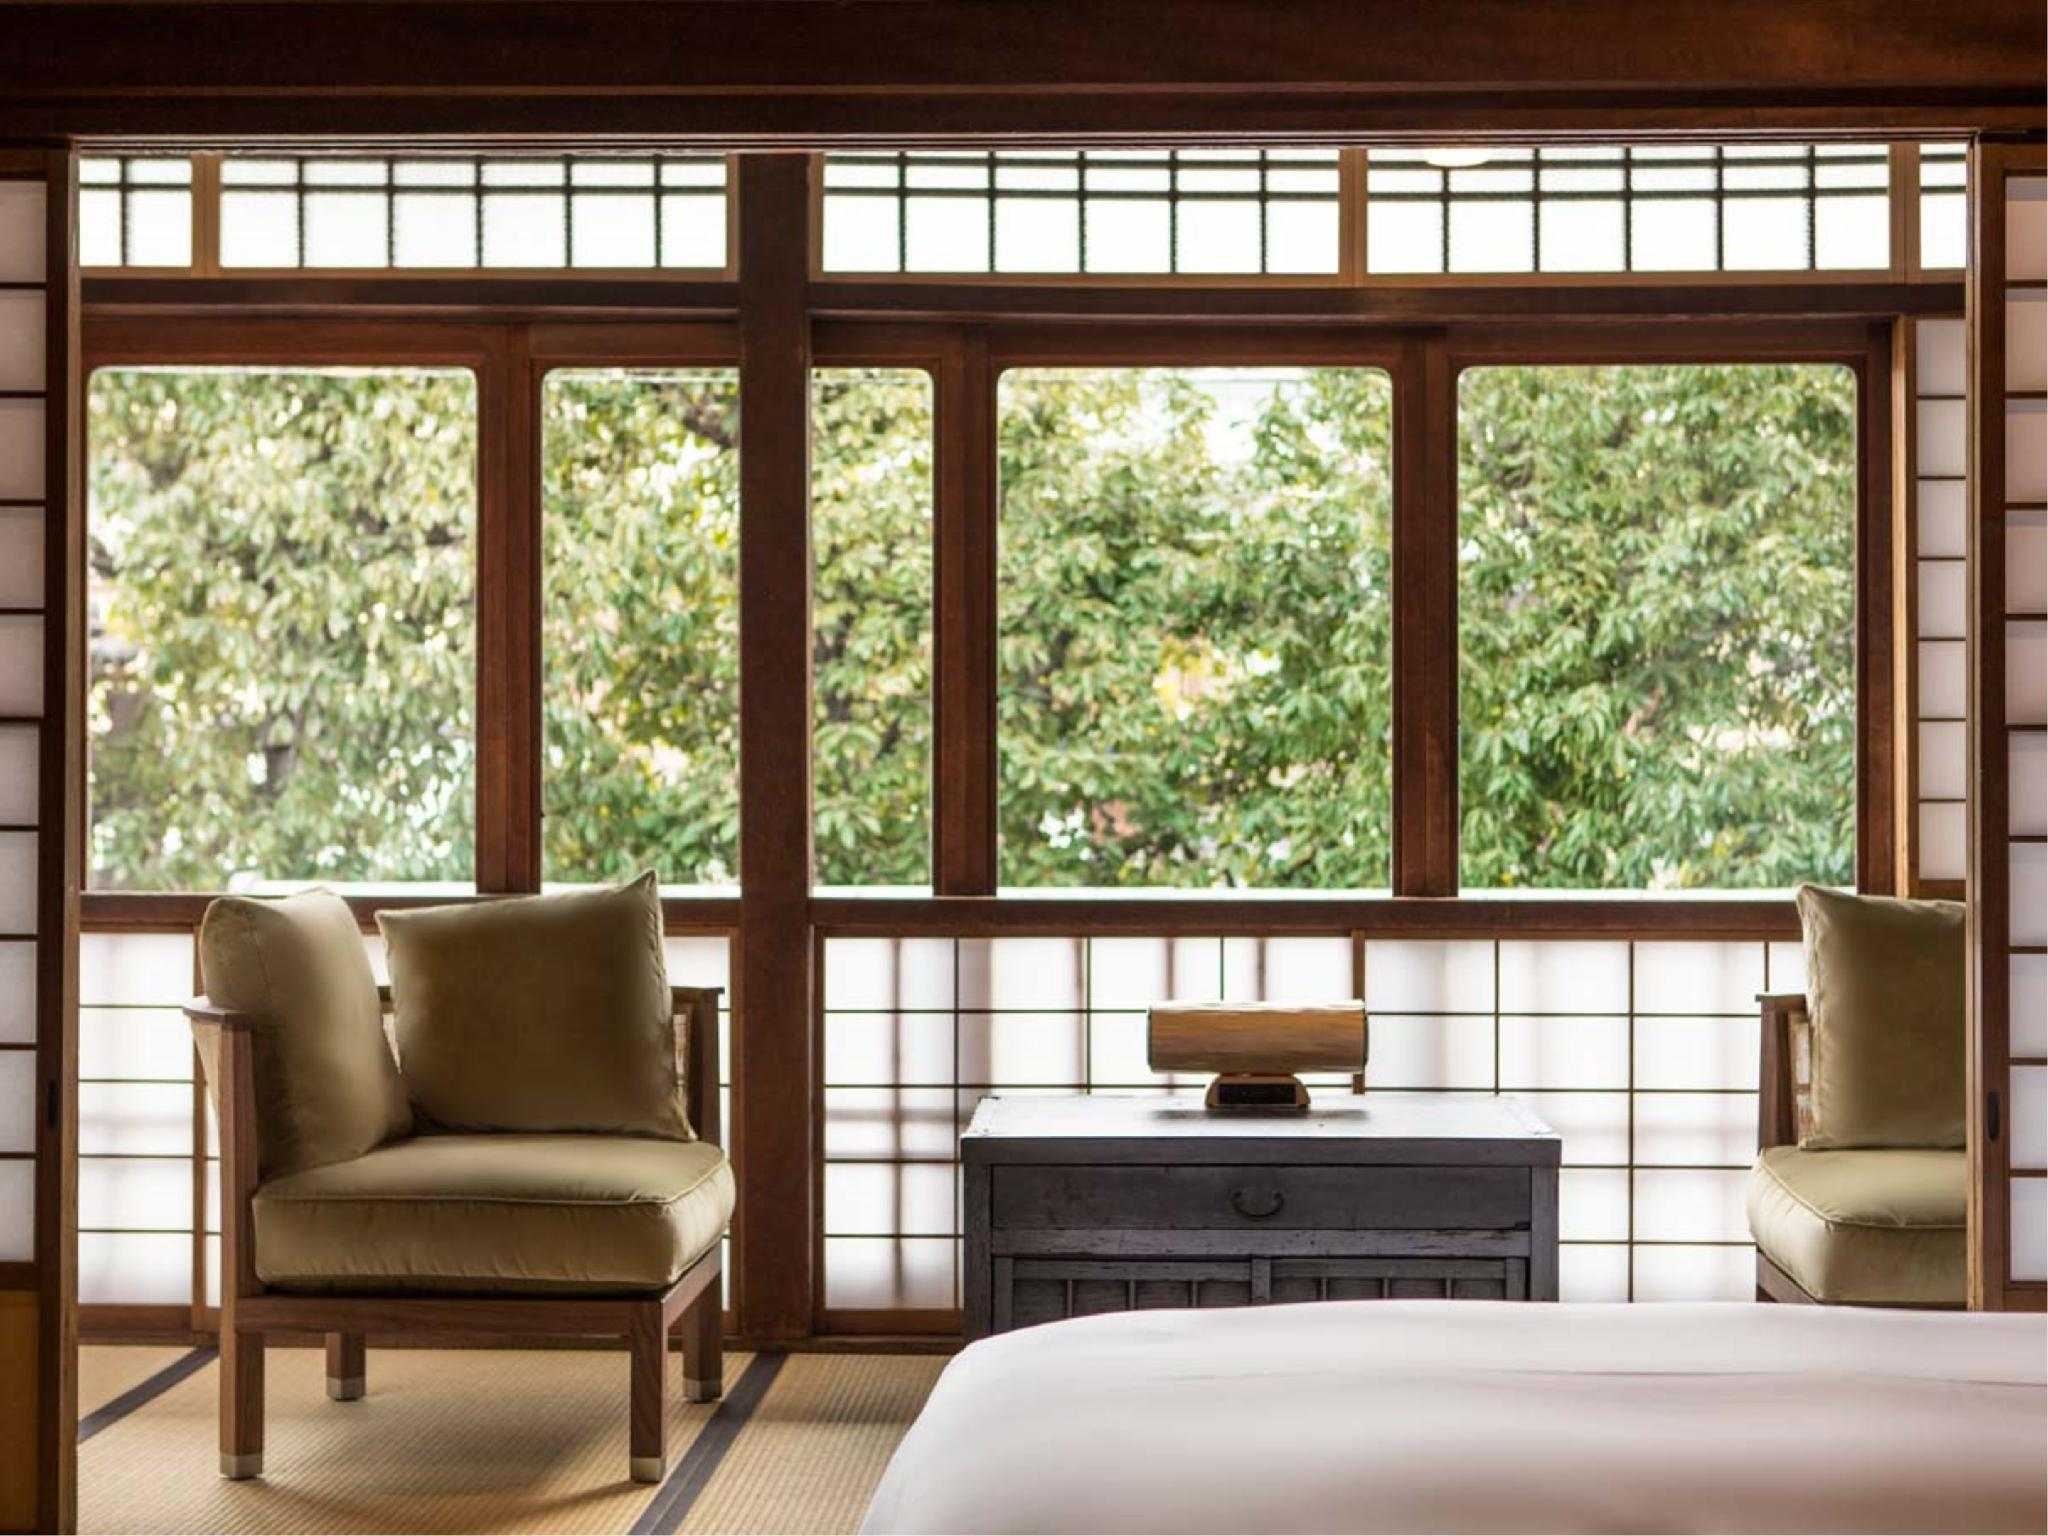 Higashiyama View Deluxe Twin Room (No. 106, Main Building)